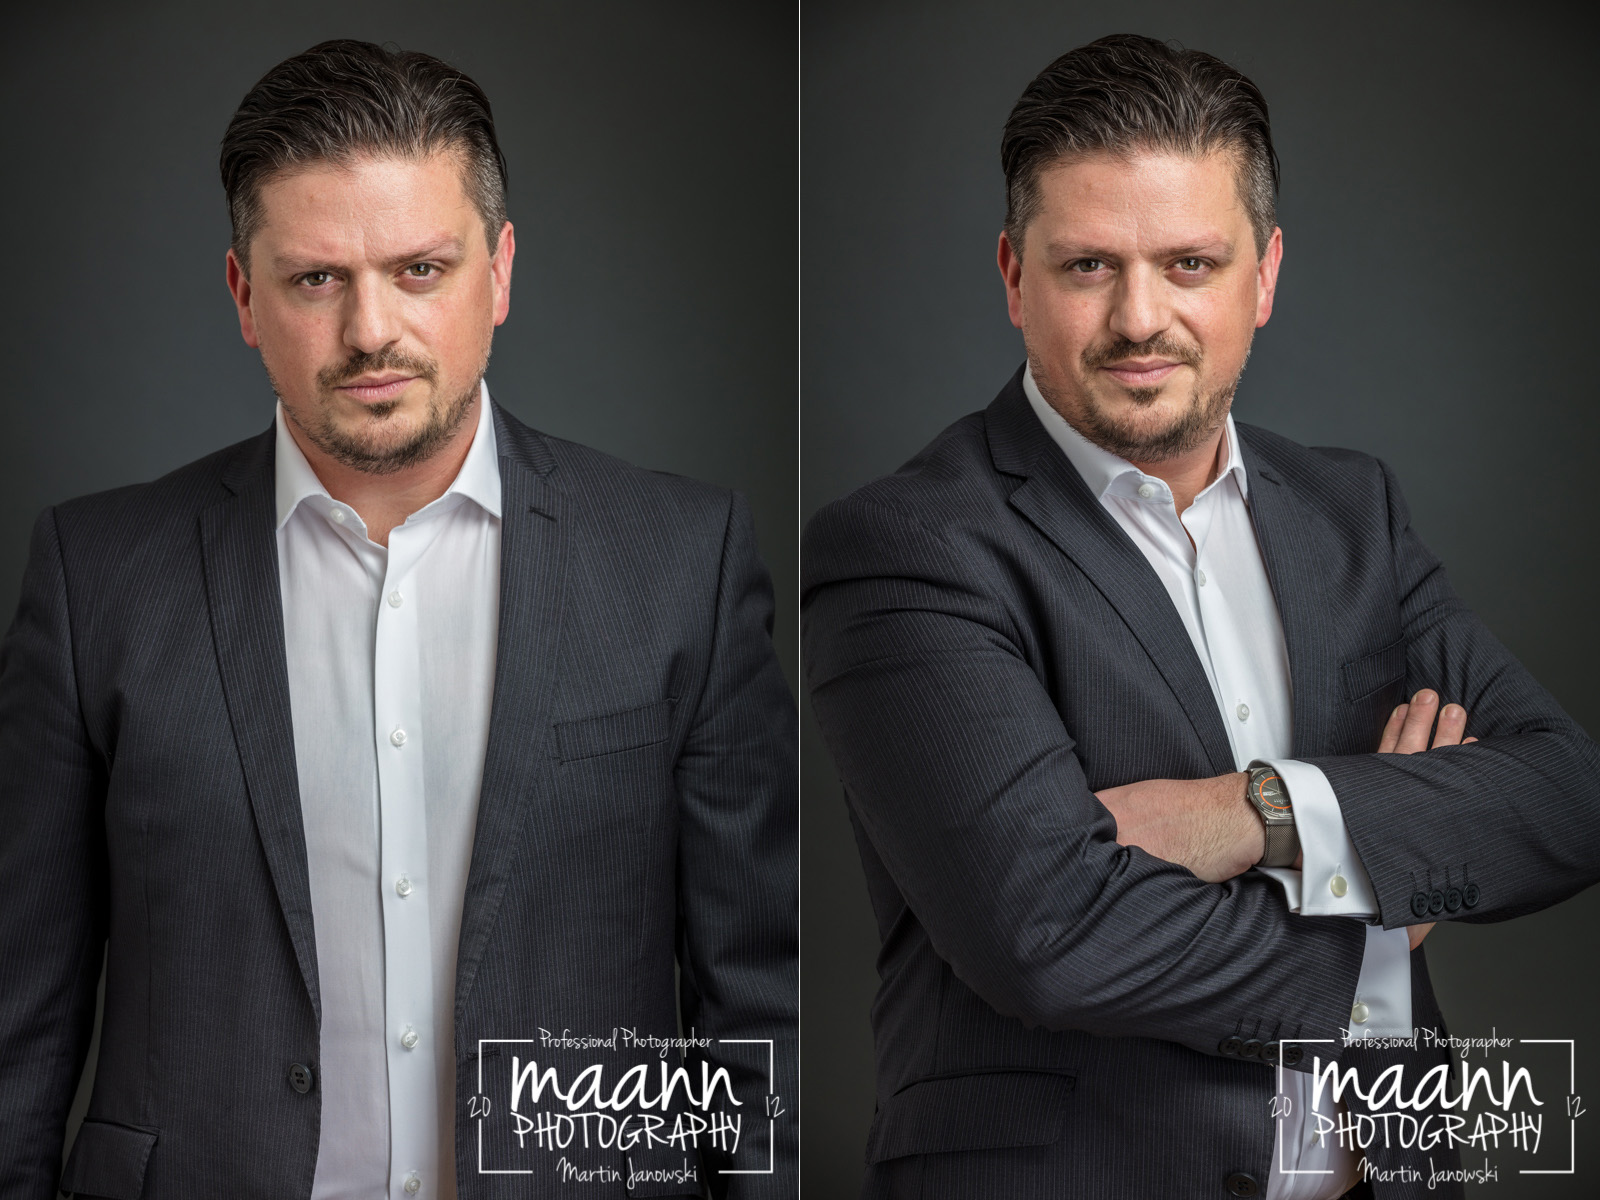 corporate headshot photography